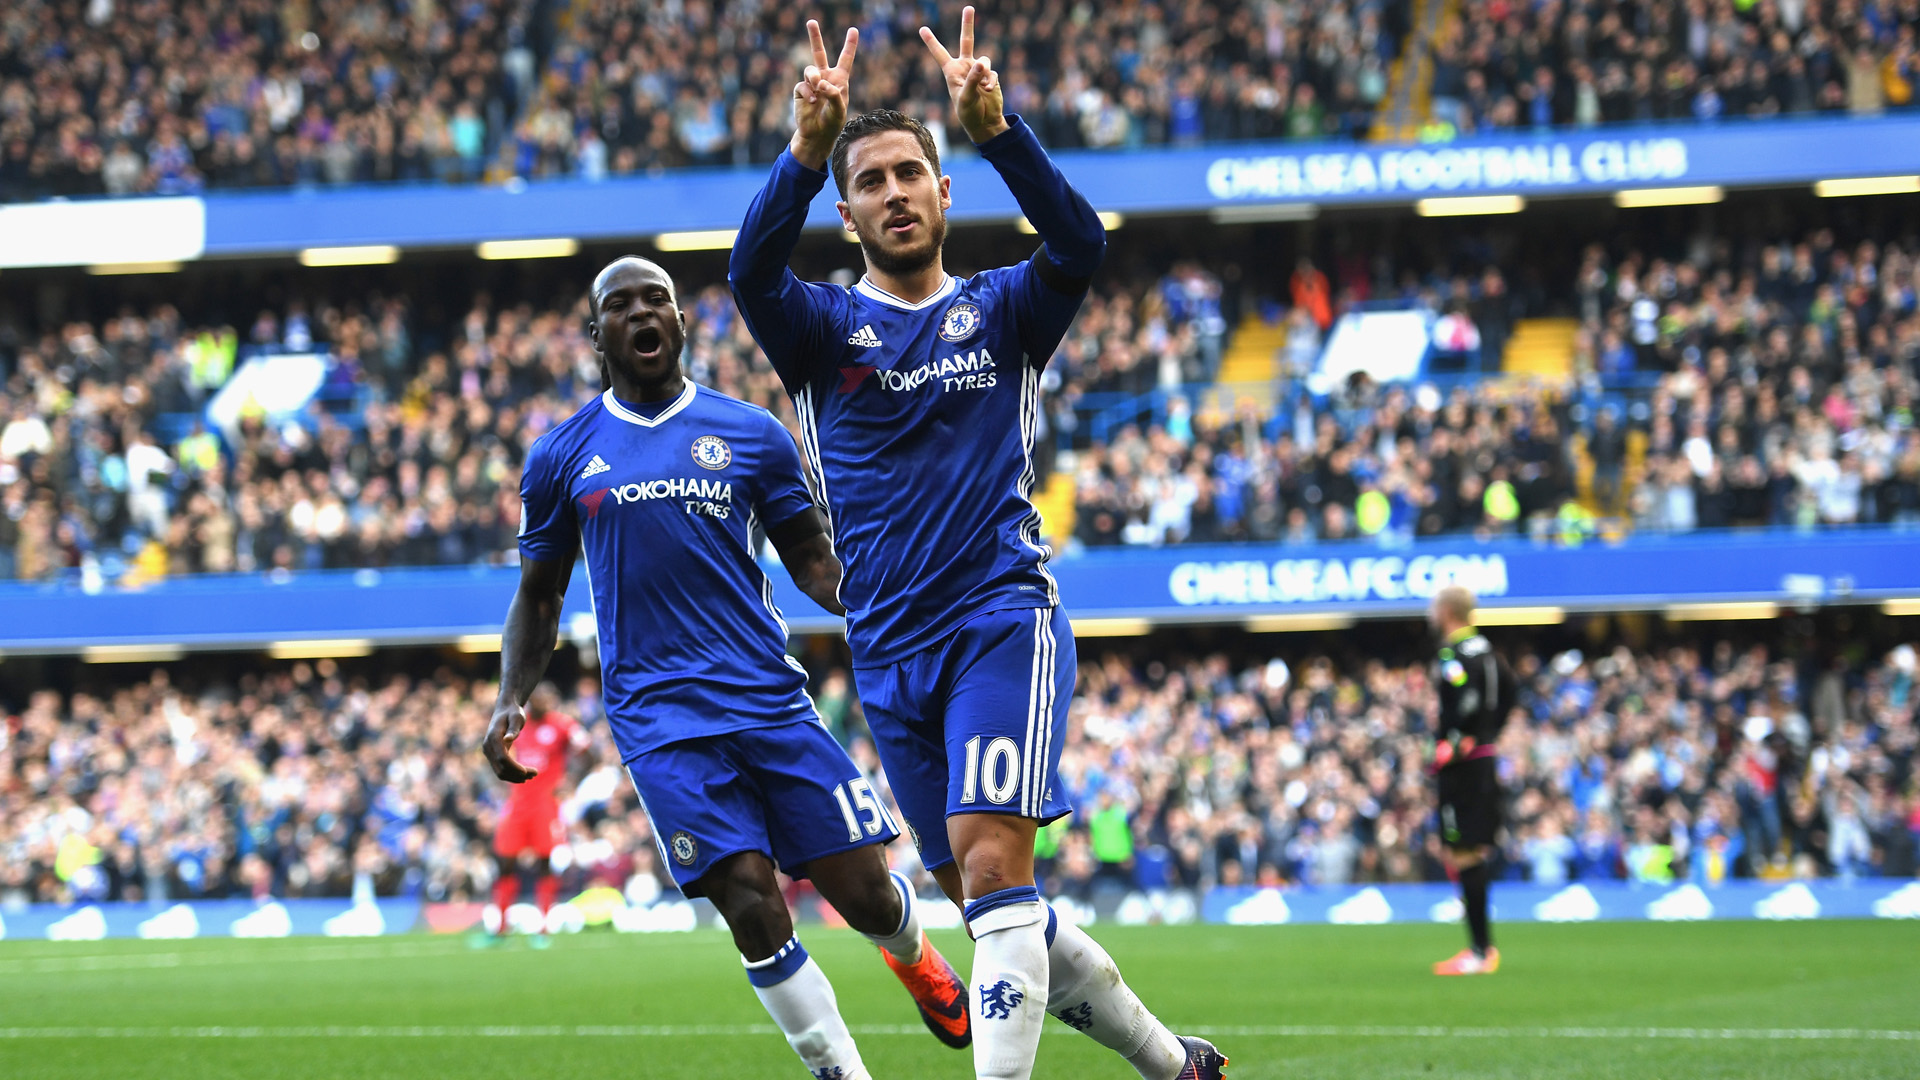 LONDON, ENGLAND - OCTOBER 15: Eden Hazard of Chelsea celebrates scoring his sides second goal during the Premier League match between Chelsea and Leicester City at Stamford Bridge on October 15, 2016 in London, England.  (Photo by Shaun Botterill/Getty Images)